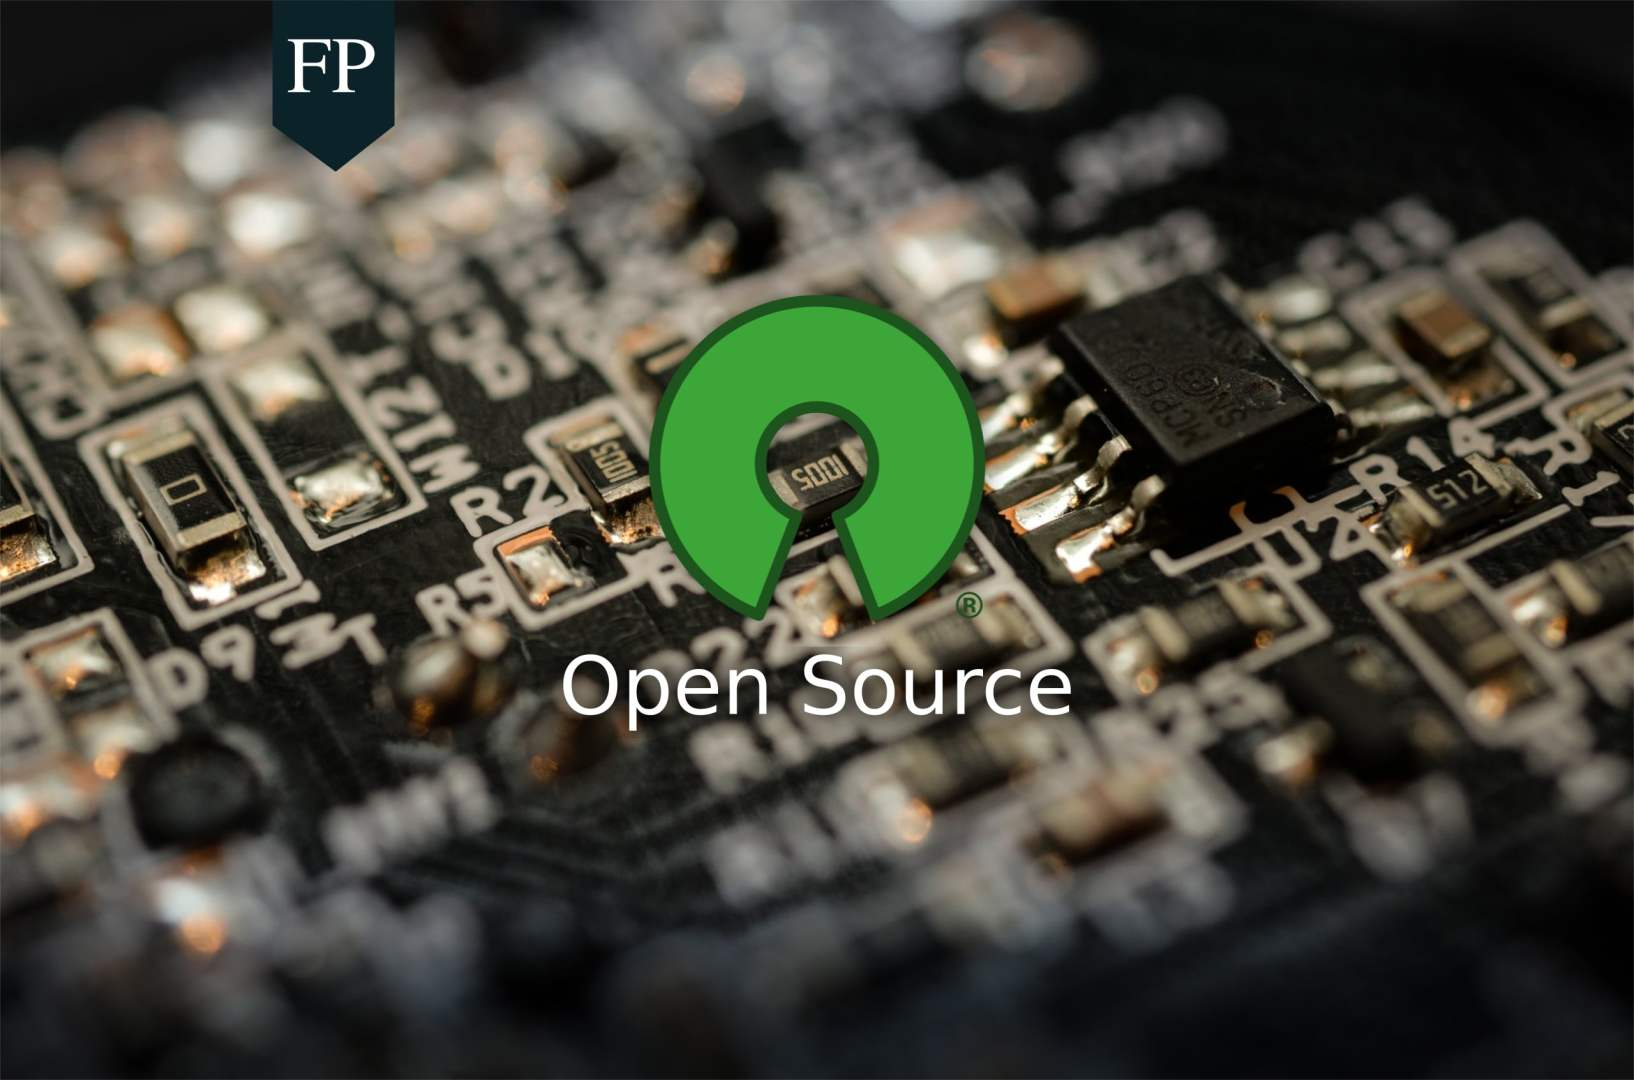 111 open source